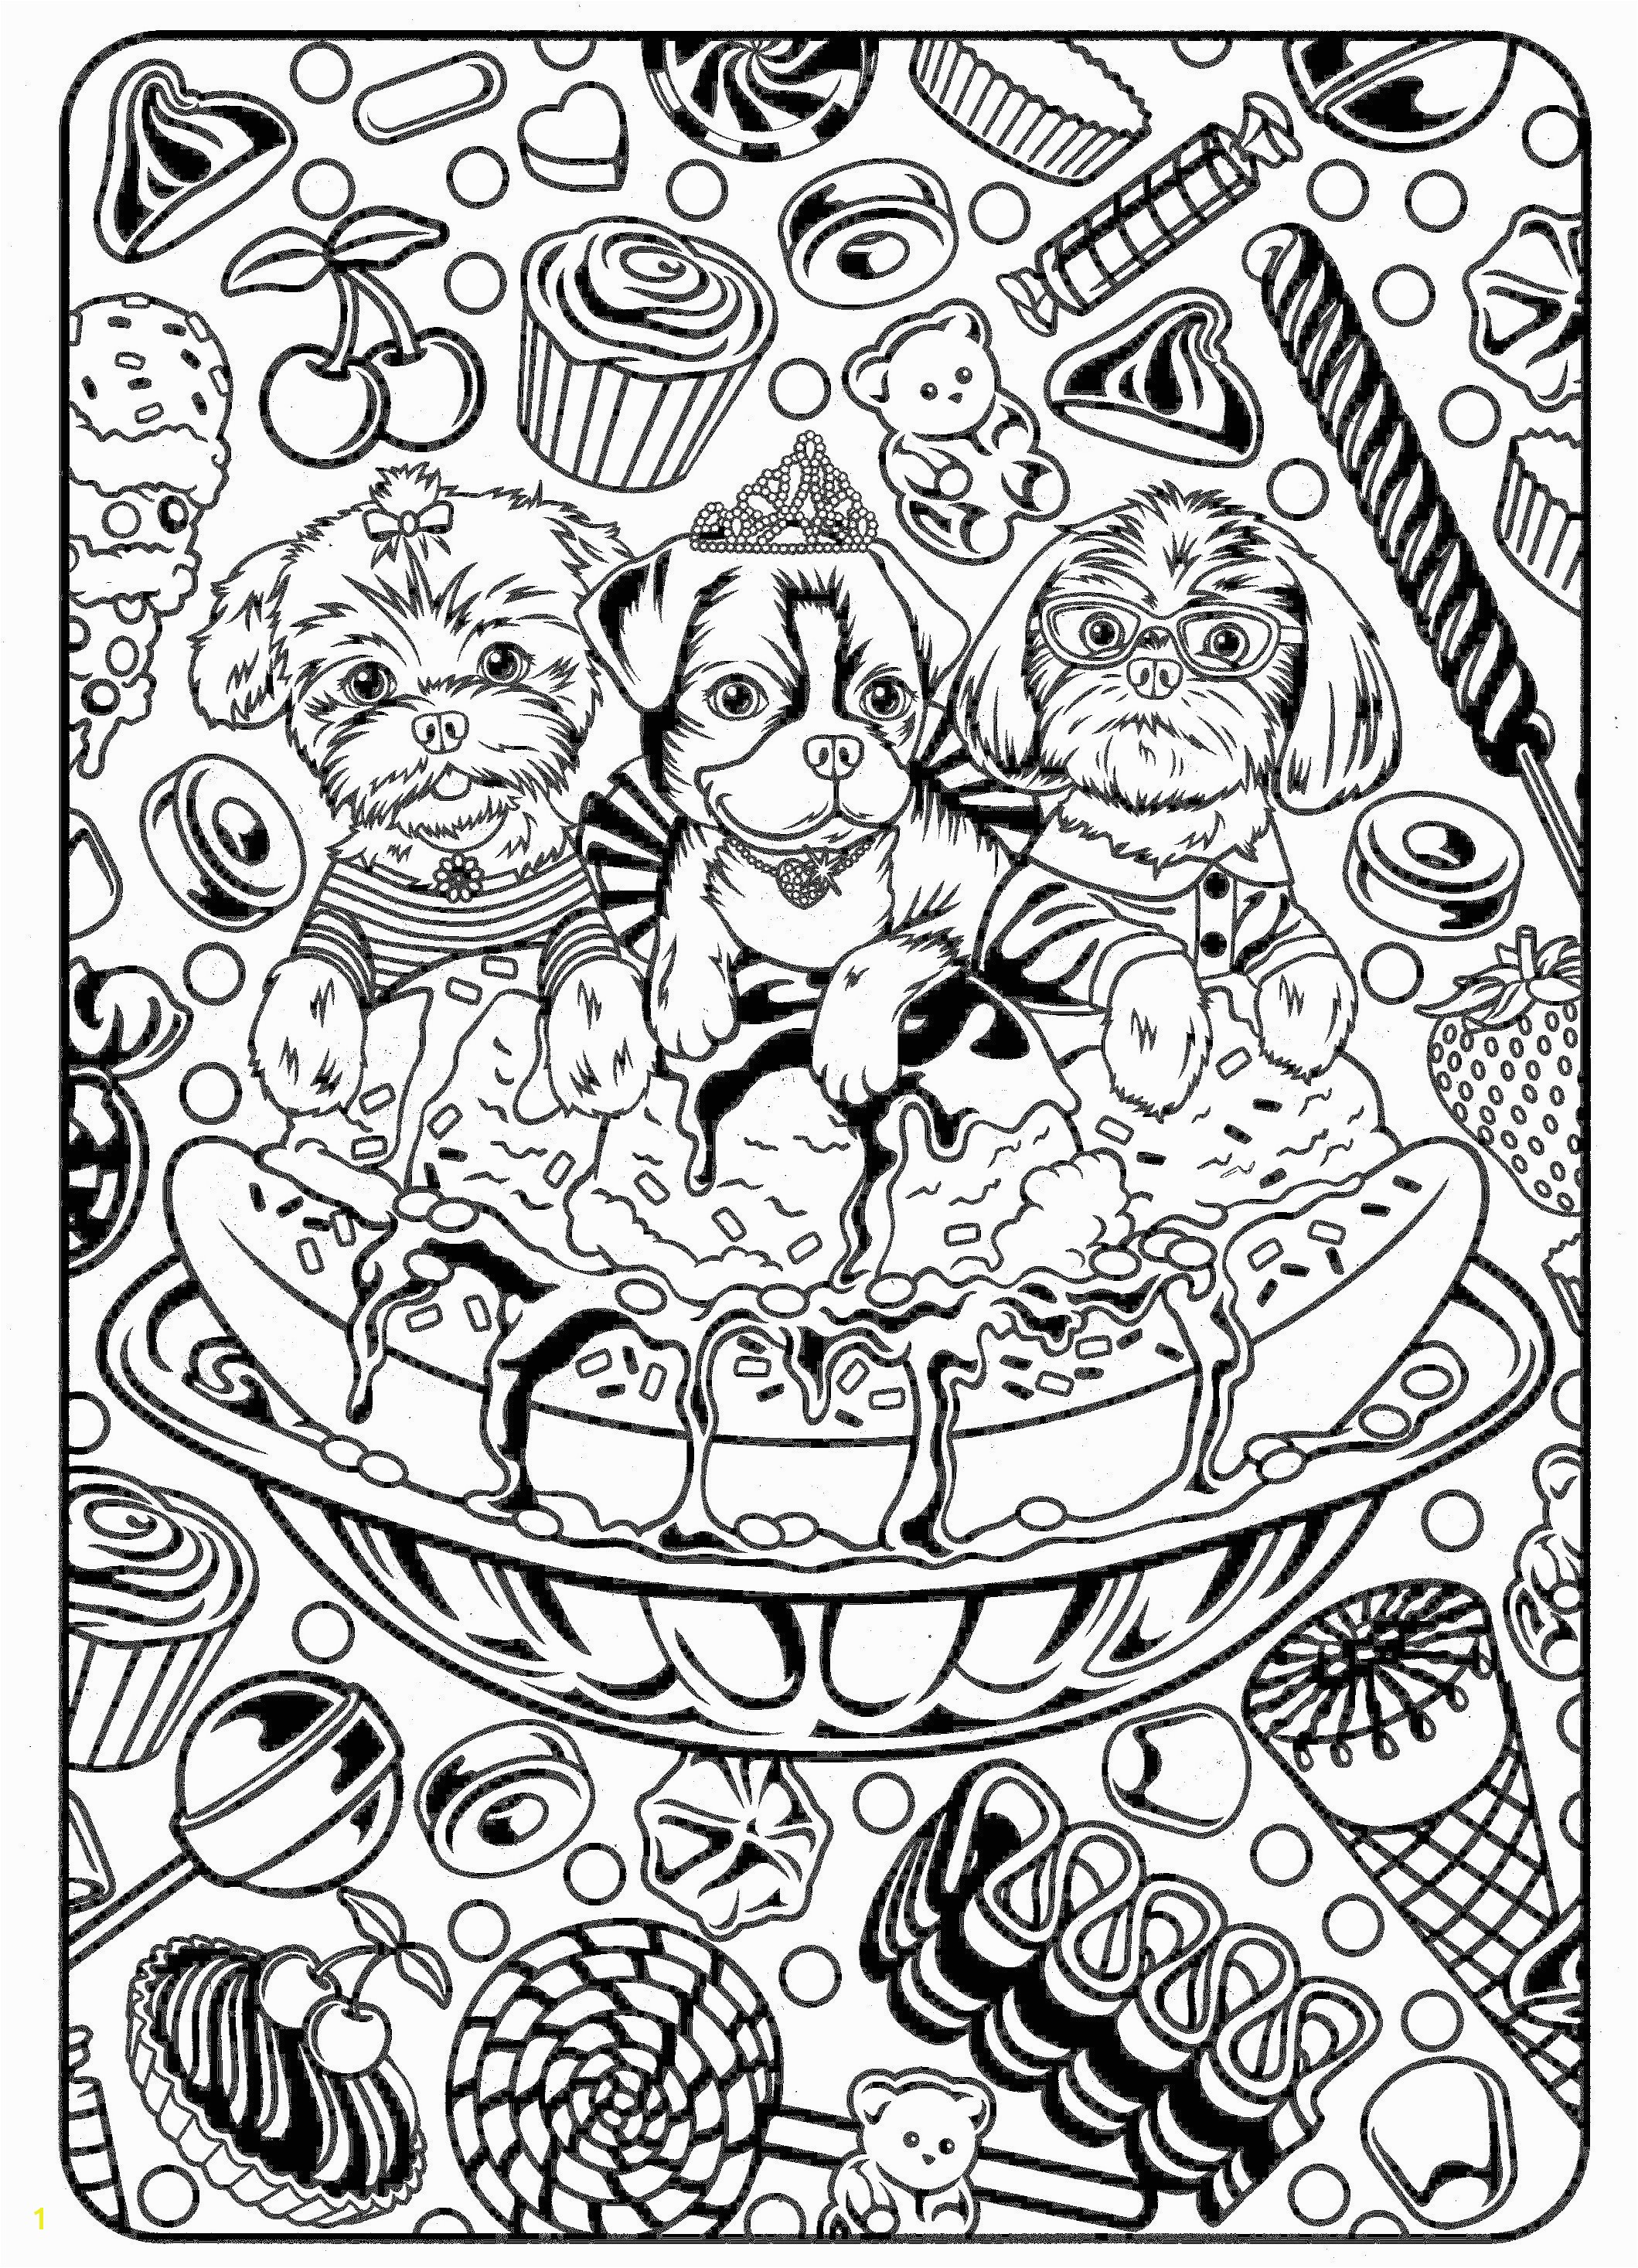 Anger Coloring Pages Space Coloring Pages Beautiful Fresh S S Media Cache Ak0 Pinimg originals 0d